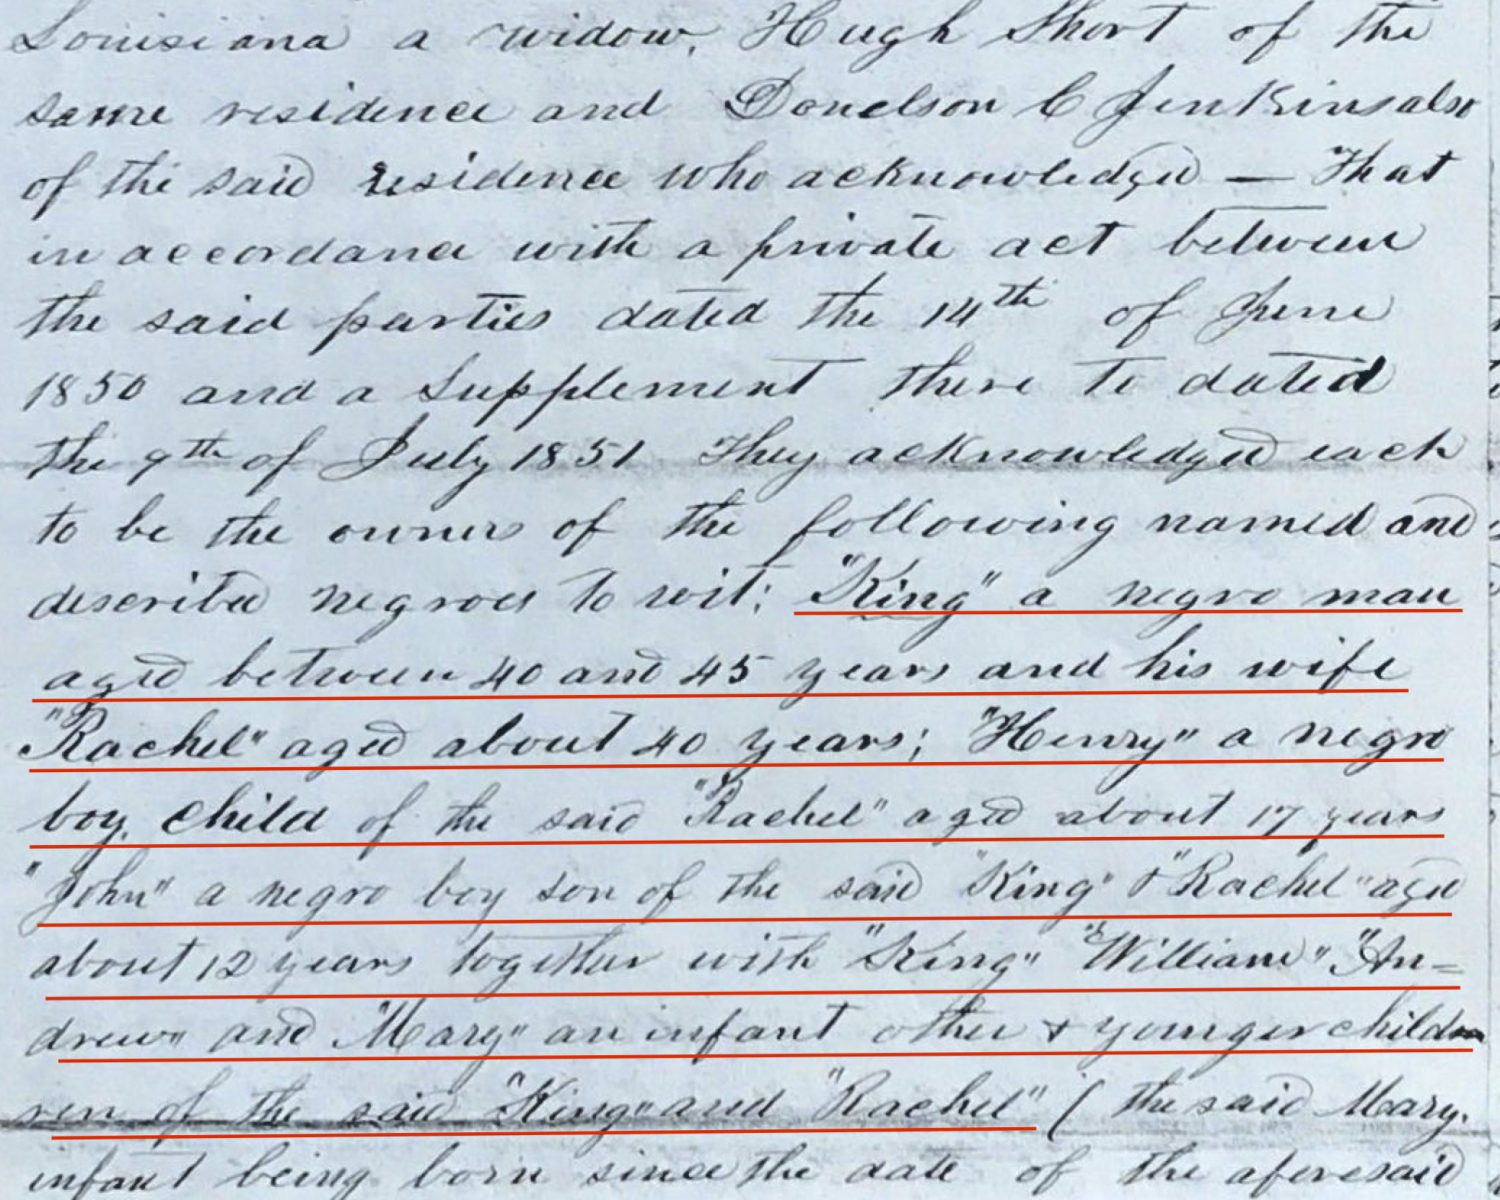 "Portion of the June 14, 1850 agreement between Nancy Caffery Jenkins, Donelson ""D.C."" Jenkins, and Hugh Short Source: Carroll Parish, Louisiana, Deed Book G, page 259. East Carroll Parish Clerk of Court, Lake Providence, Louisiana."